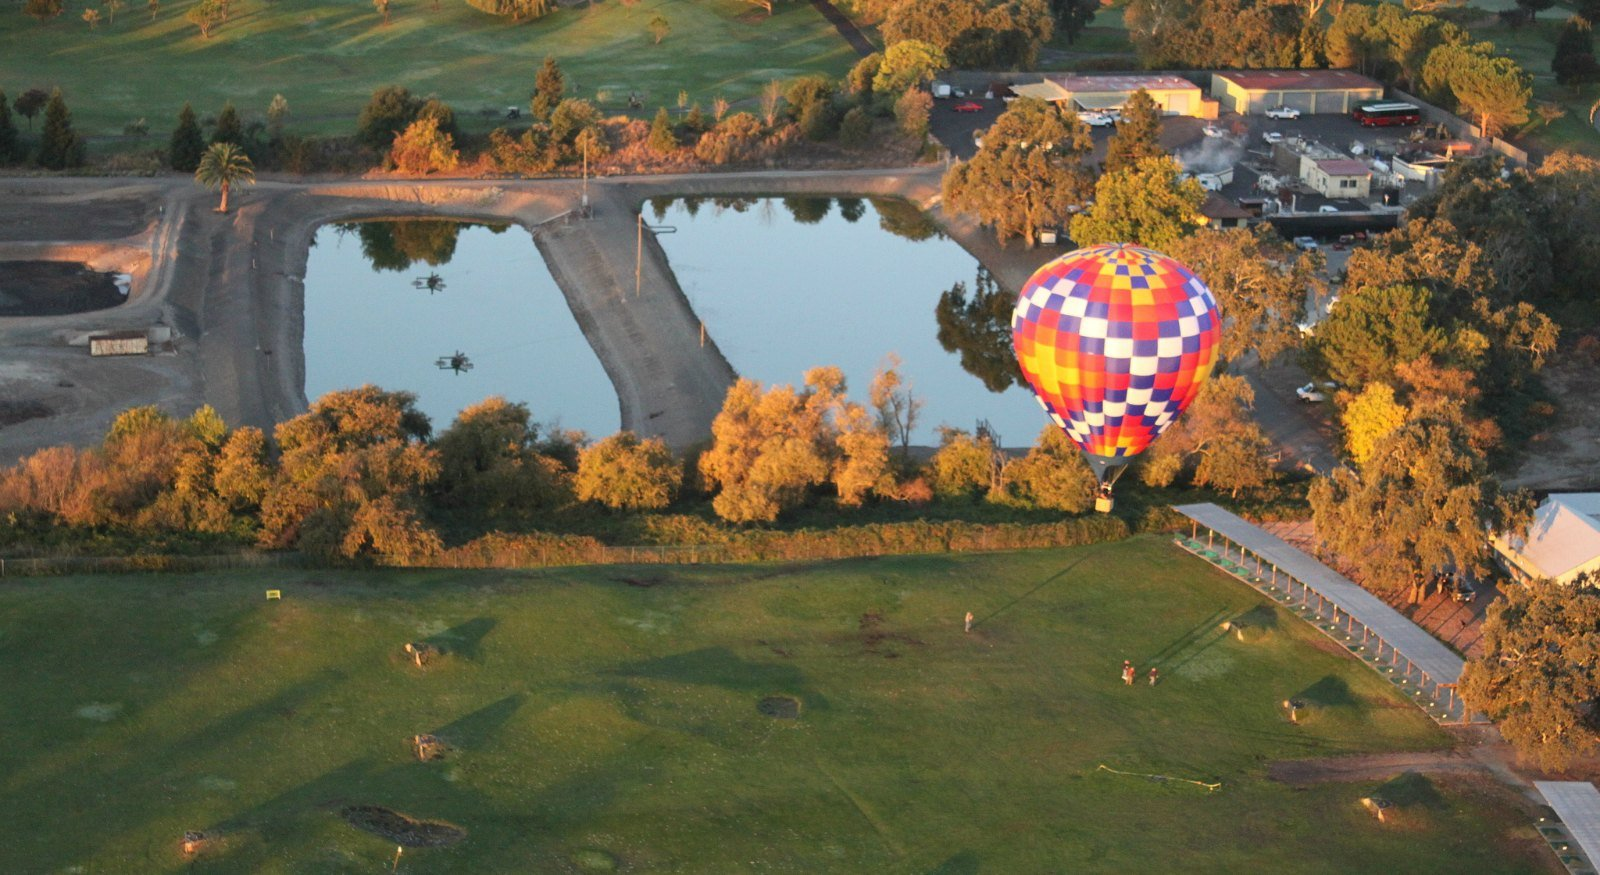 Hot air balloon flying low